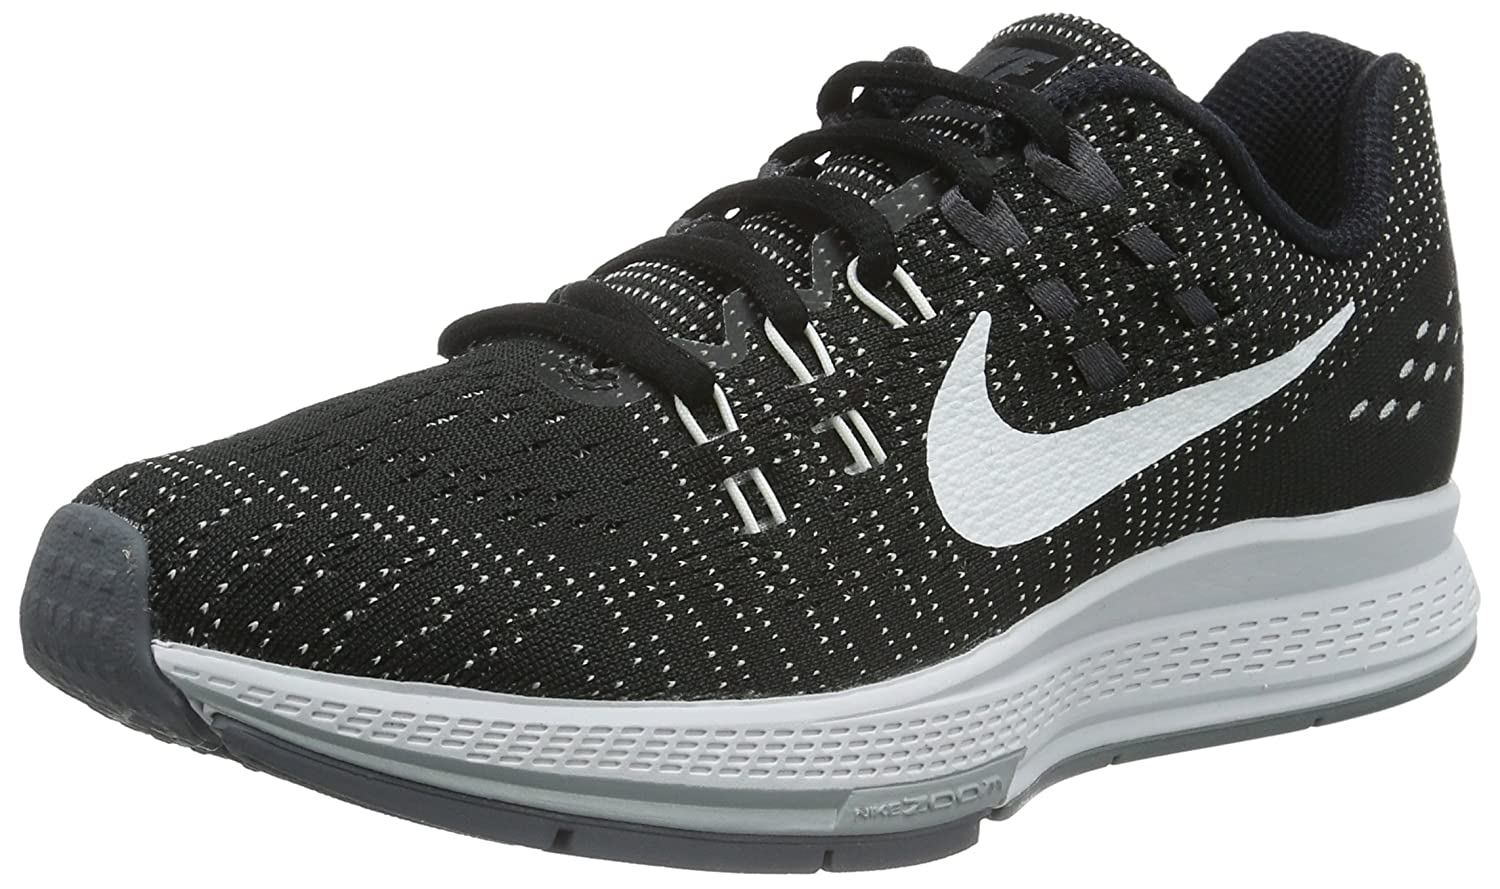 official photos 1ae1d 981bb Amazon.com   Nike Women s Air Zoom Structure 19 Flash Running Shoe   Road  Running